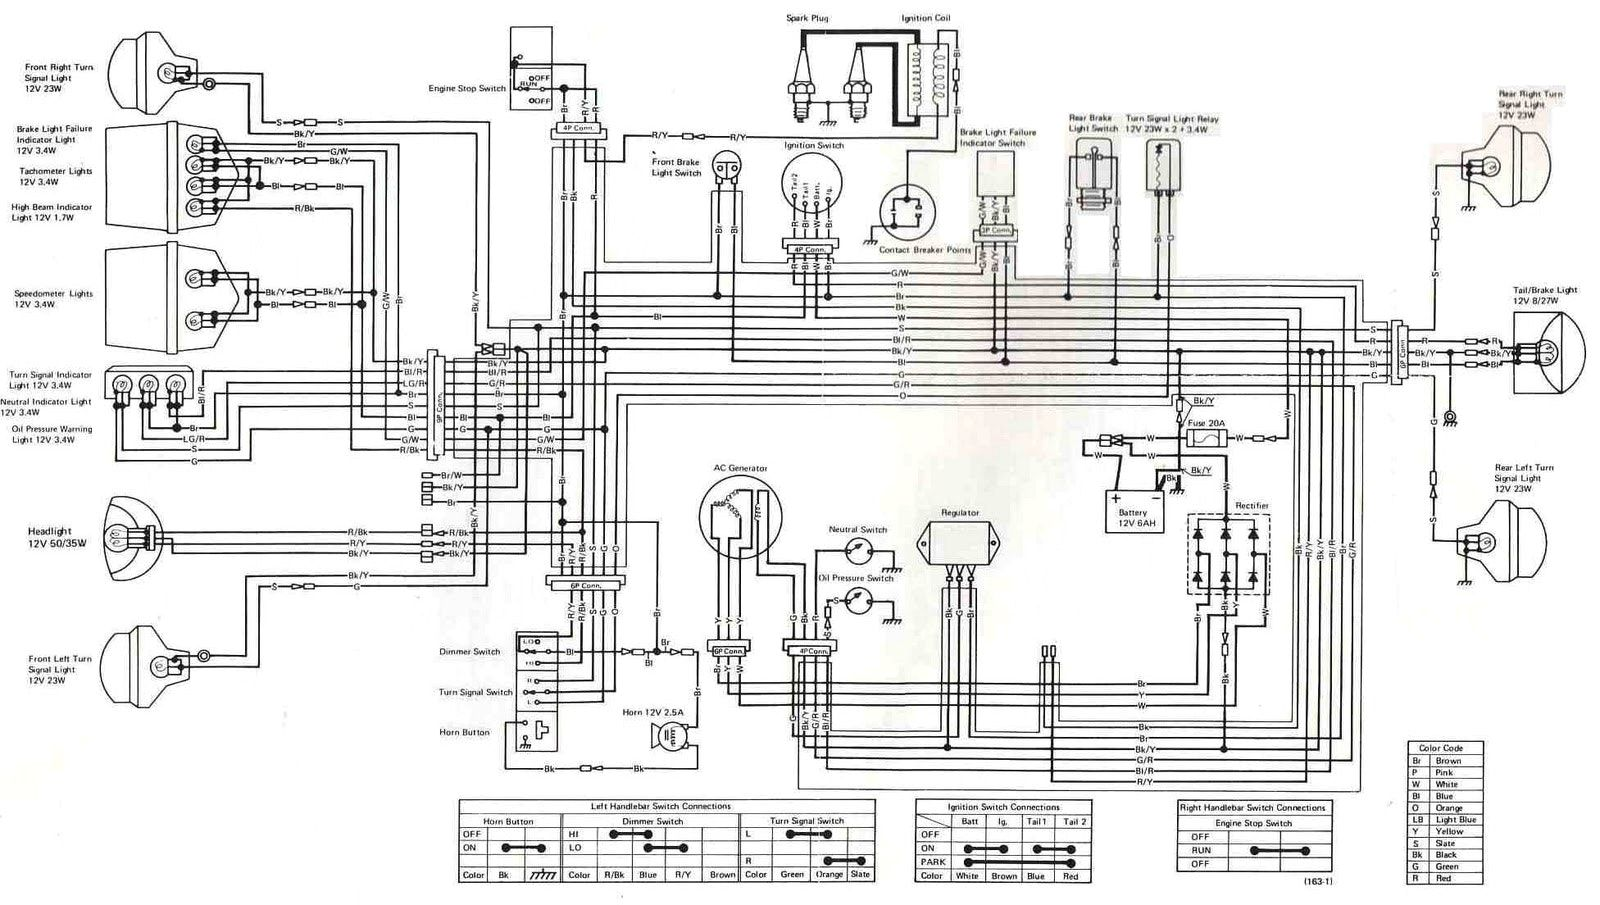 medium resolution of 98 kawasaki voyager wiring diagram worksheet and wiring diagram u2022 rh bookinc co 1984 kawasaki 1100